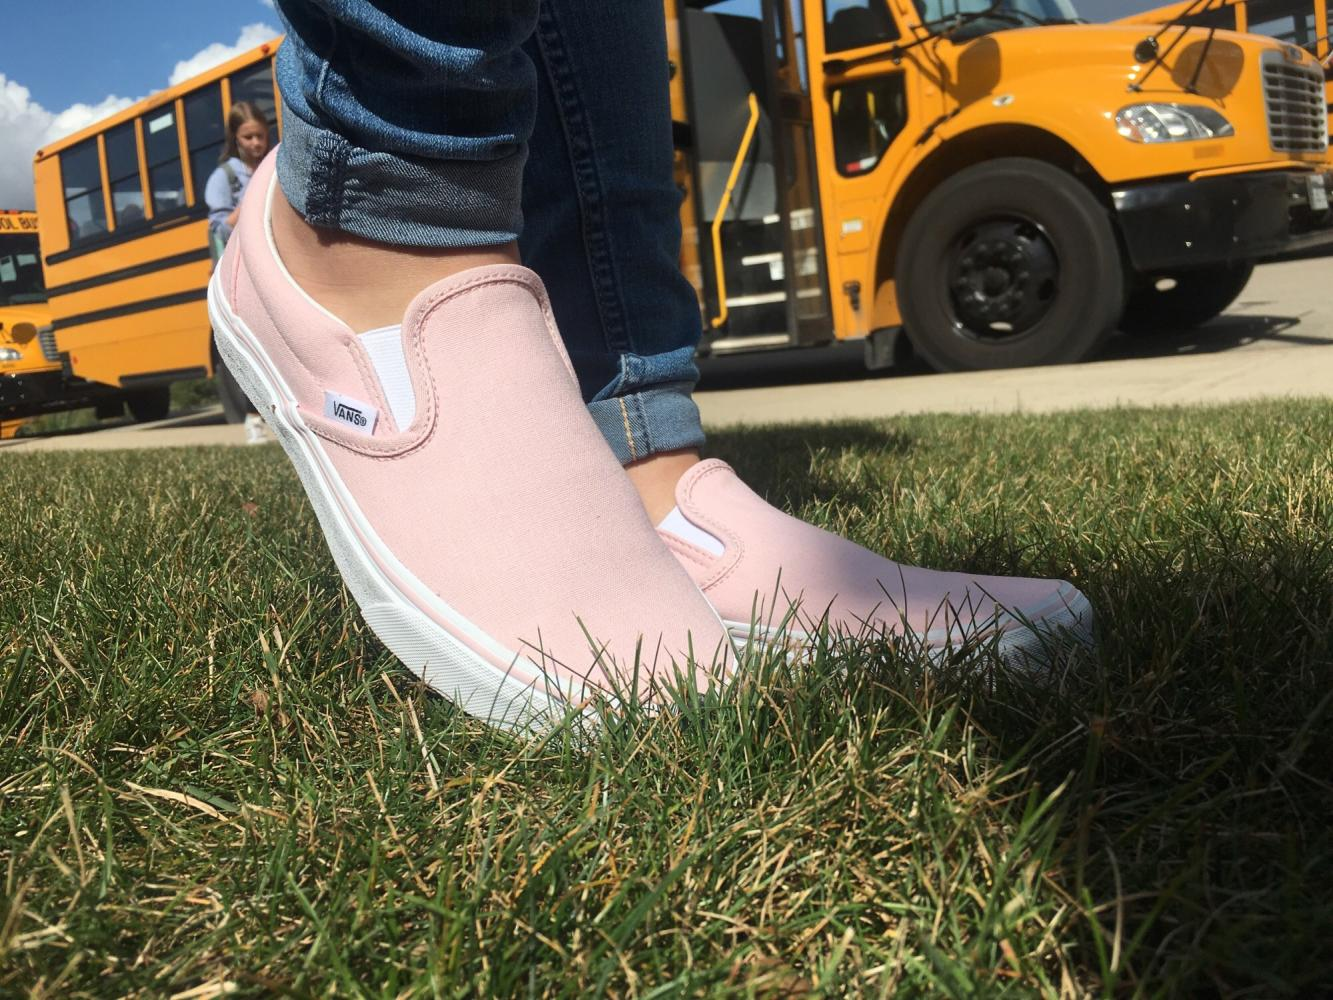 A student models a pair of Vans and jeans, the latest fall fashion.